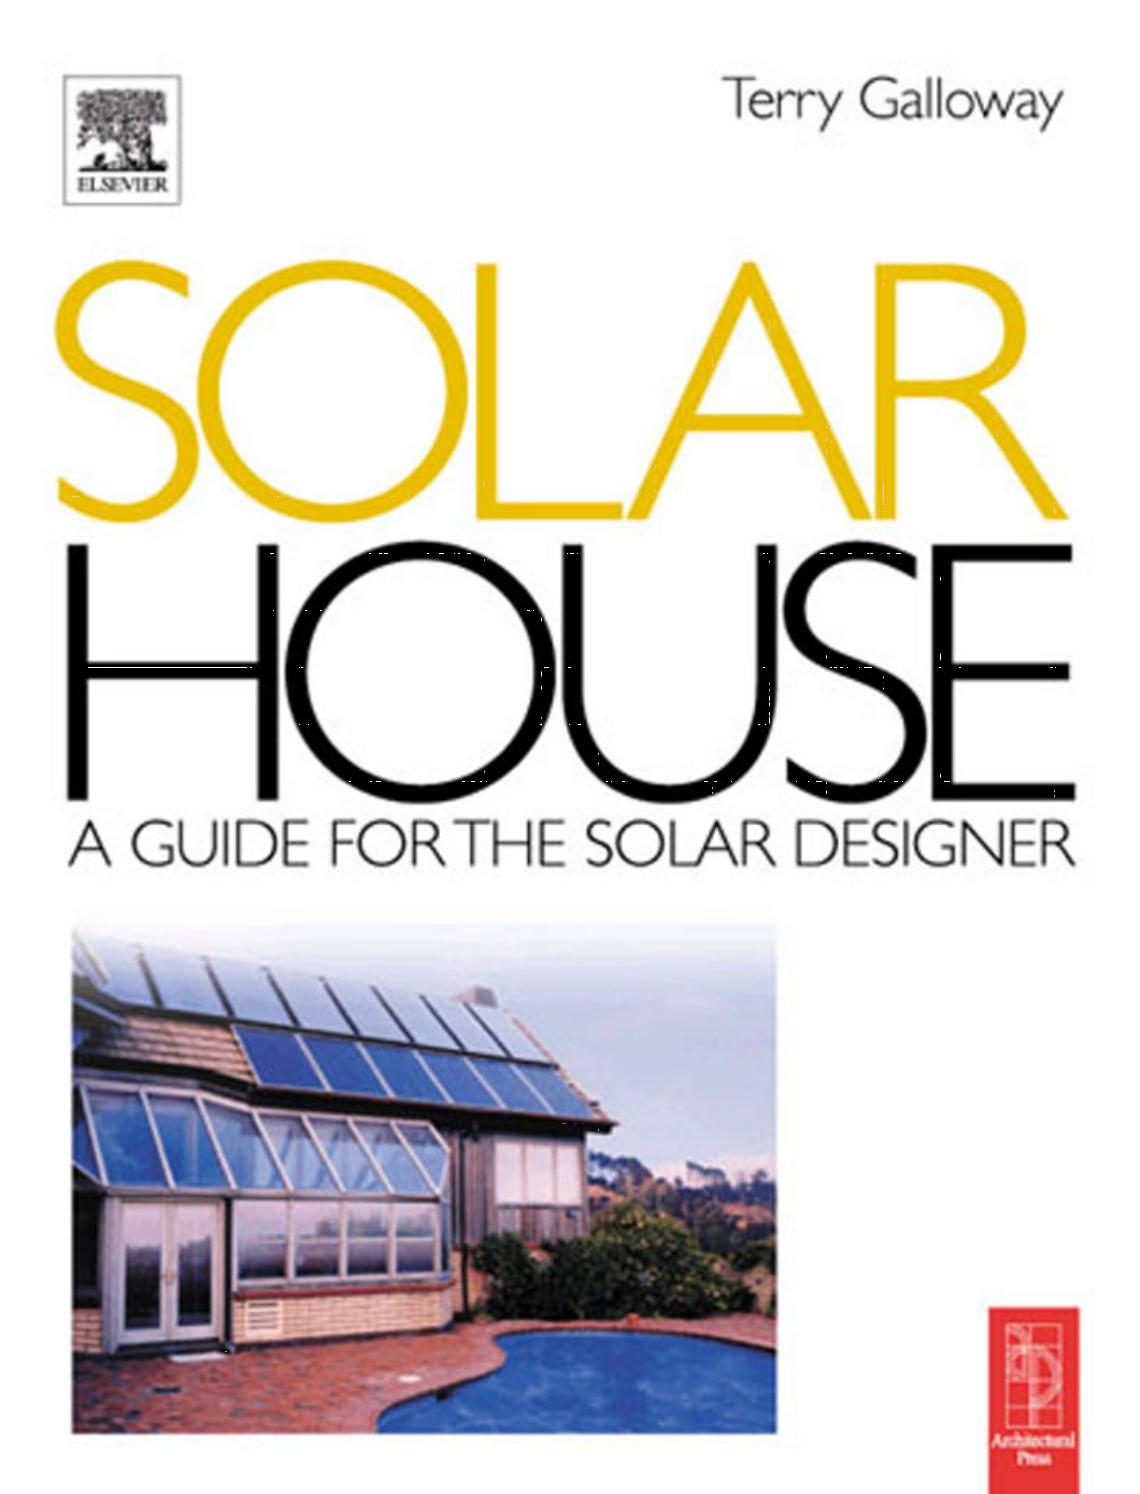 Solar House A Guide For The Solar Designer By SKY0 5 Issuu